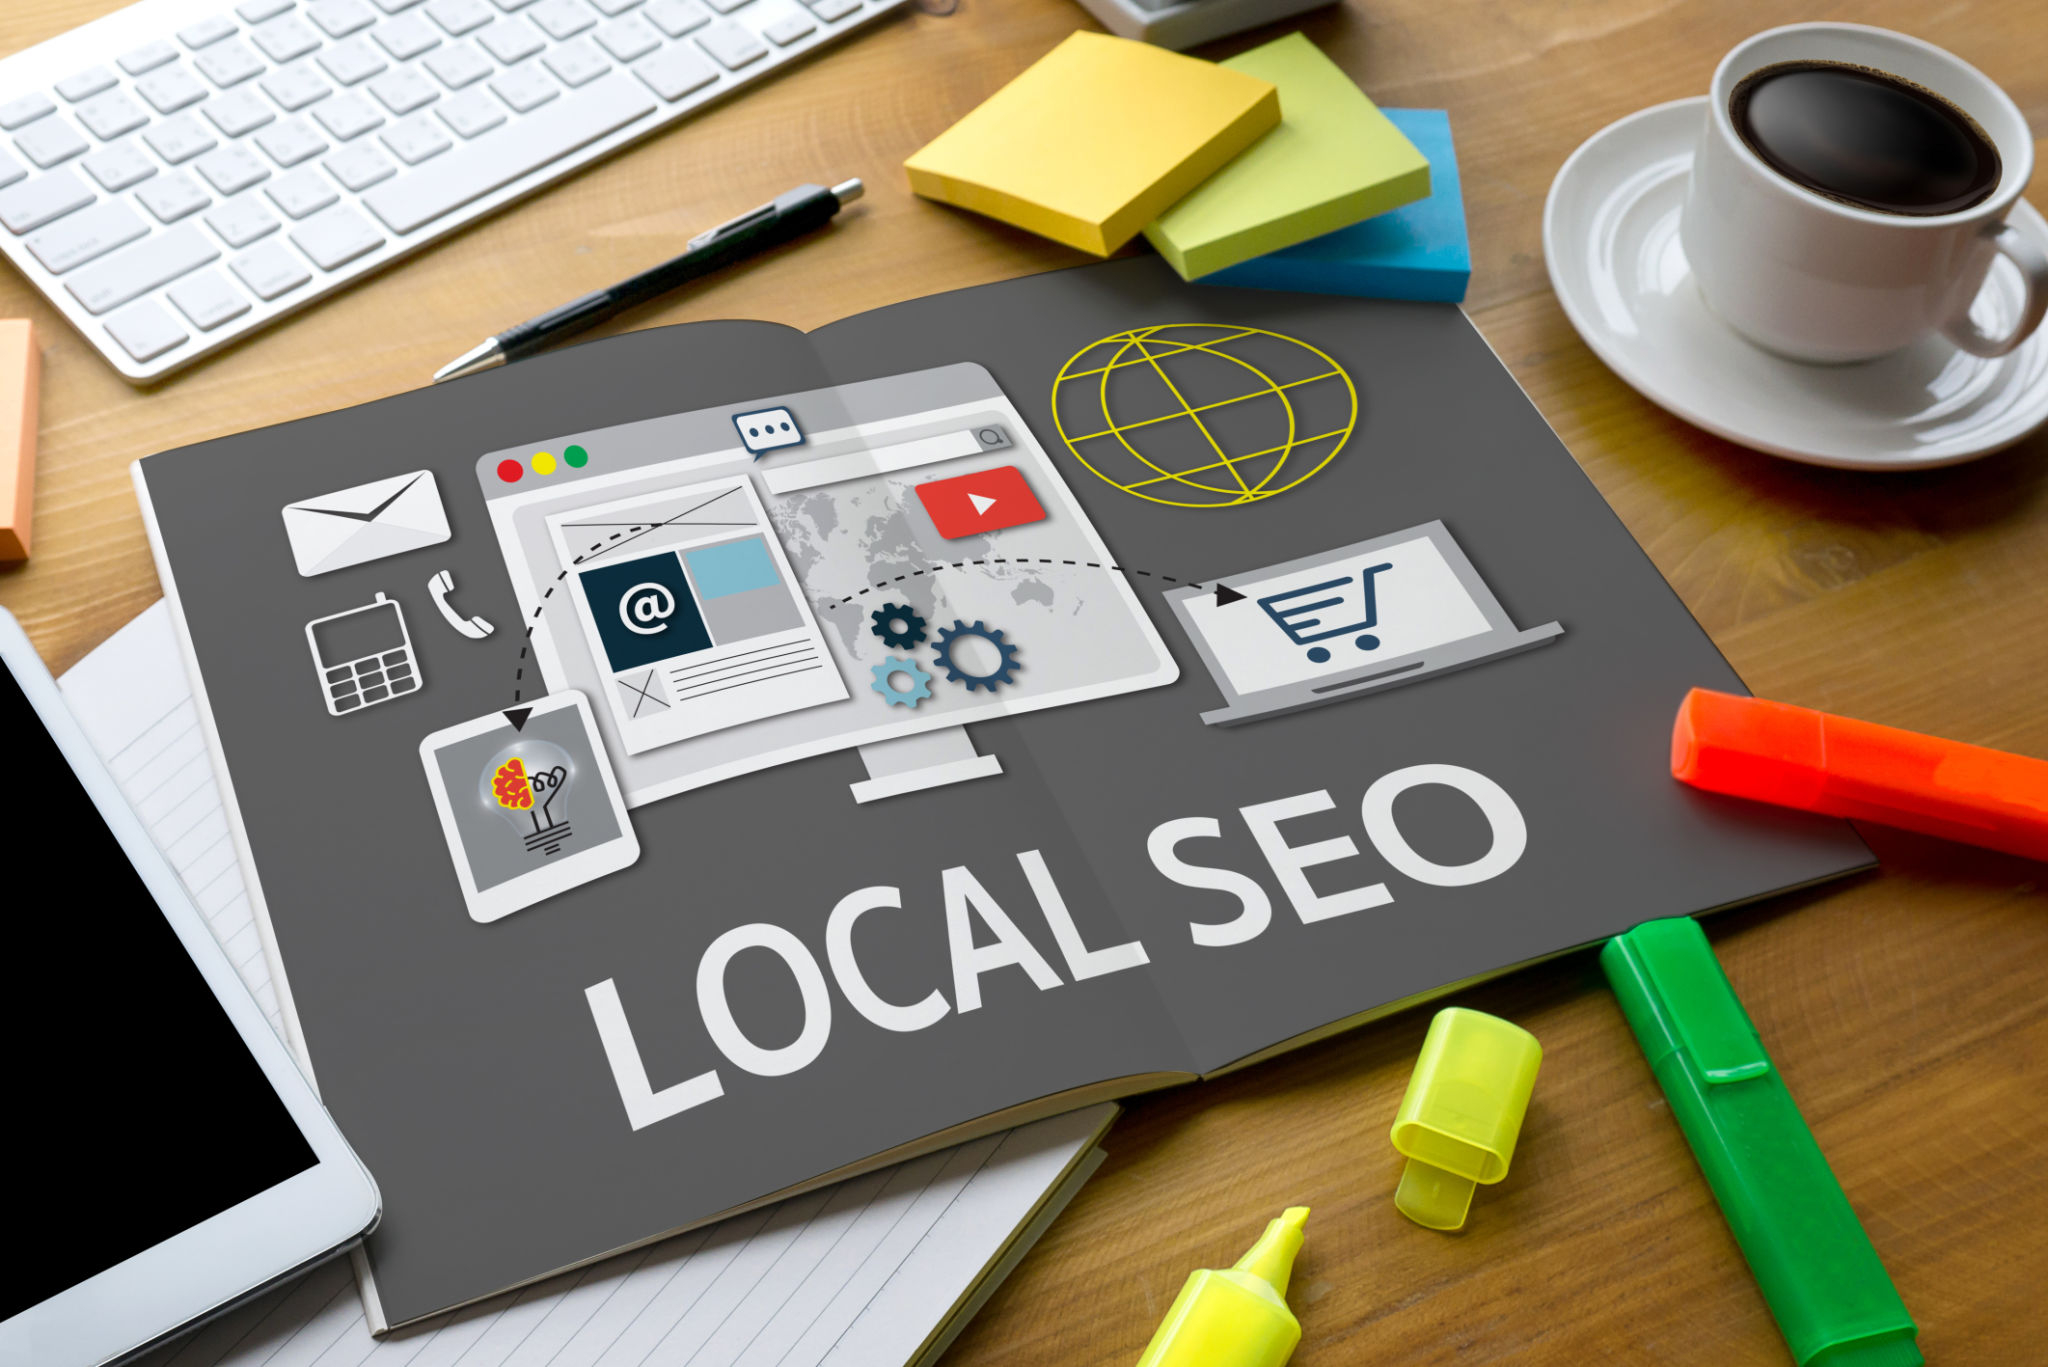 5 Key Reasons Why Local SEO Is Important